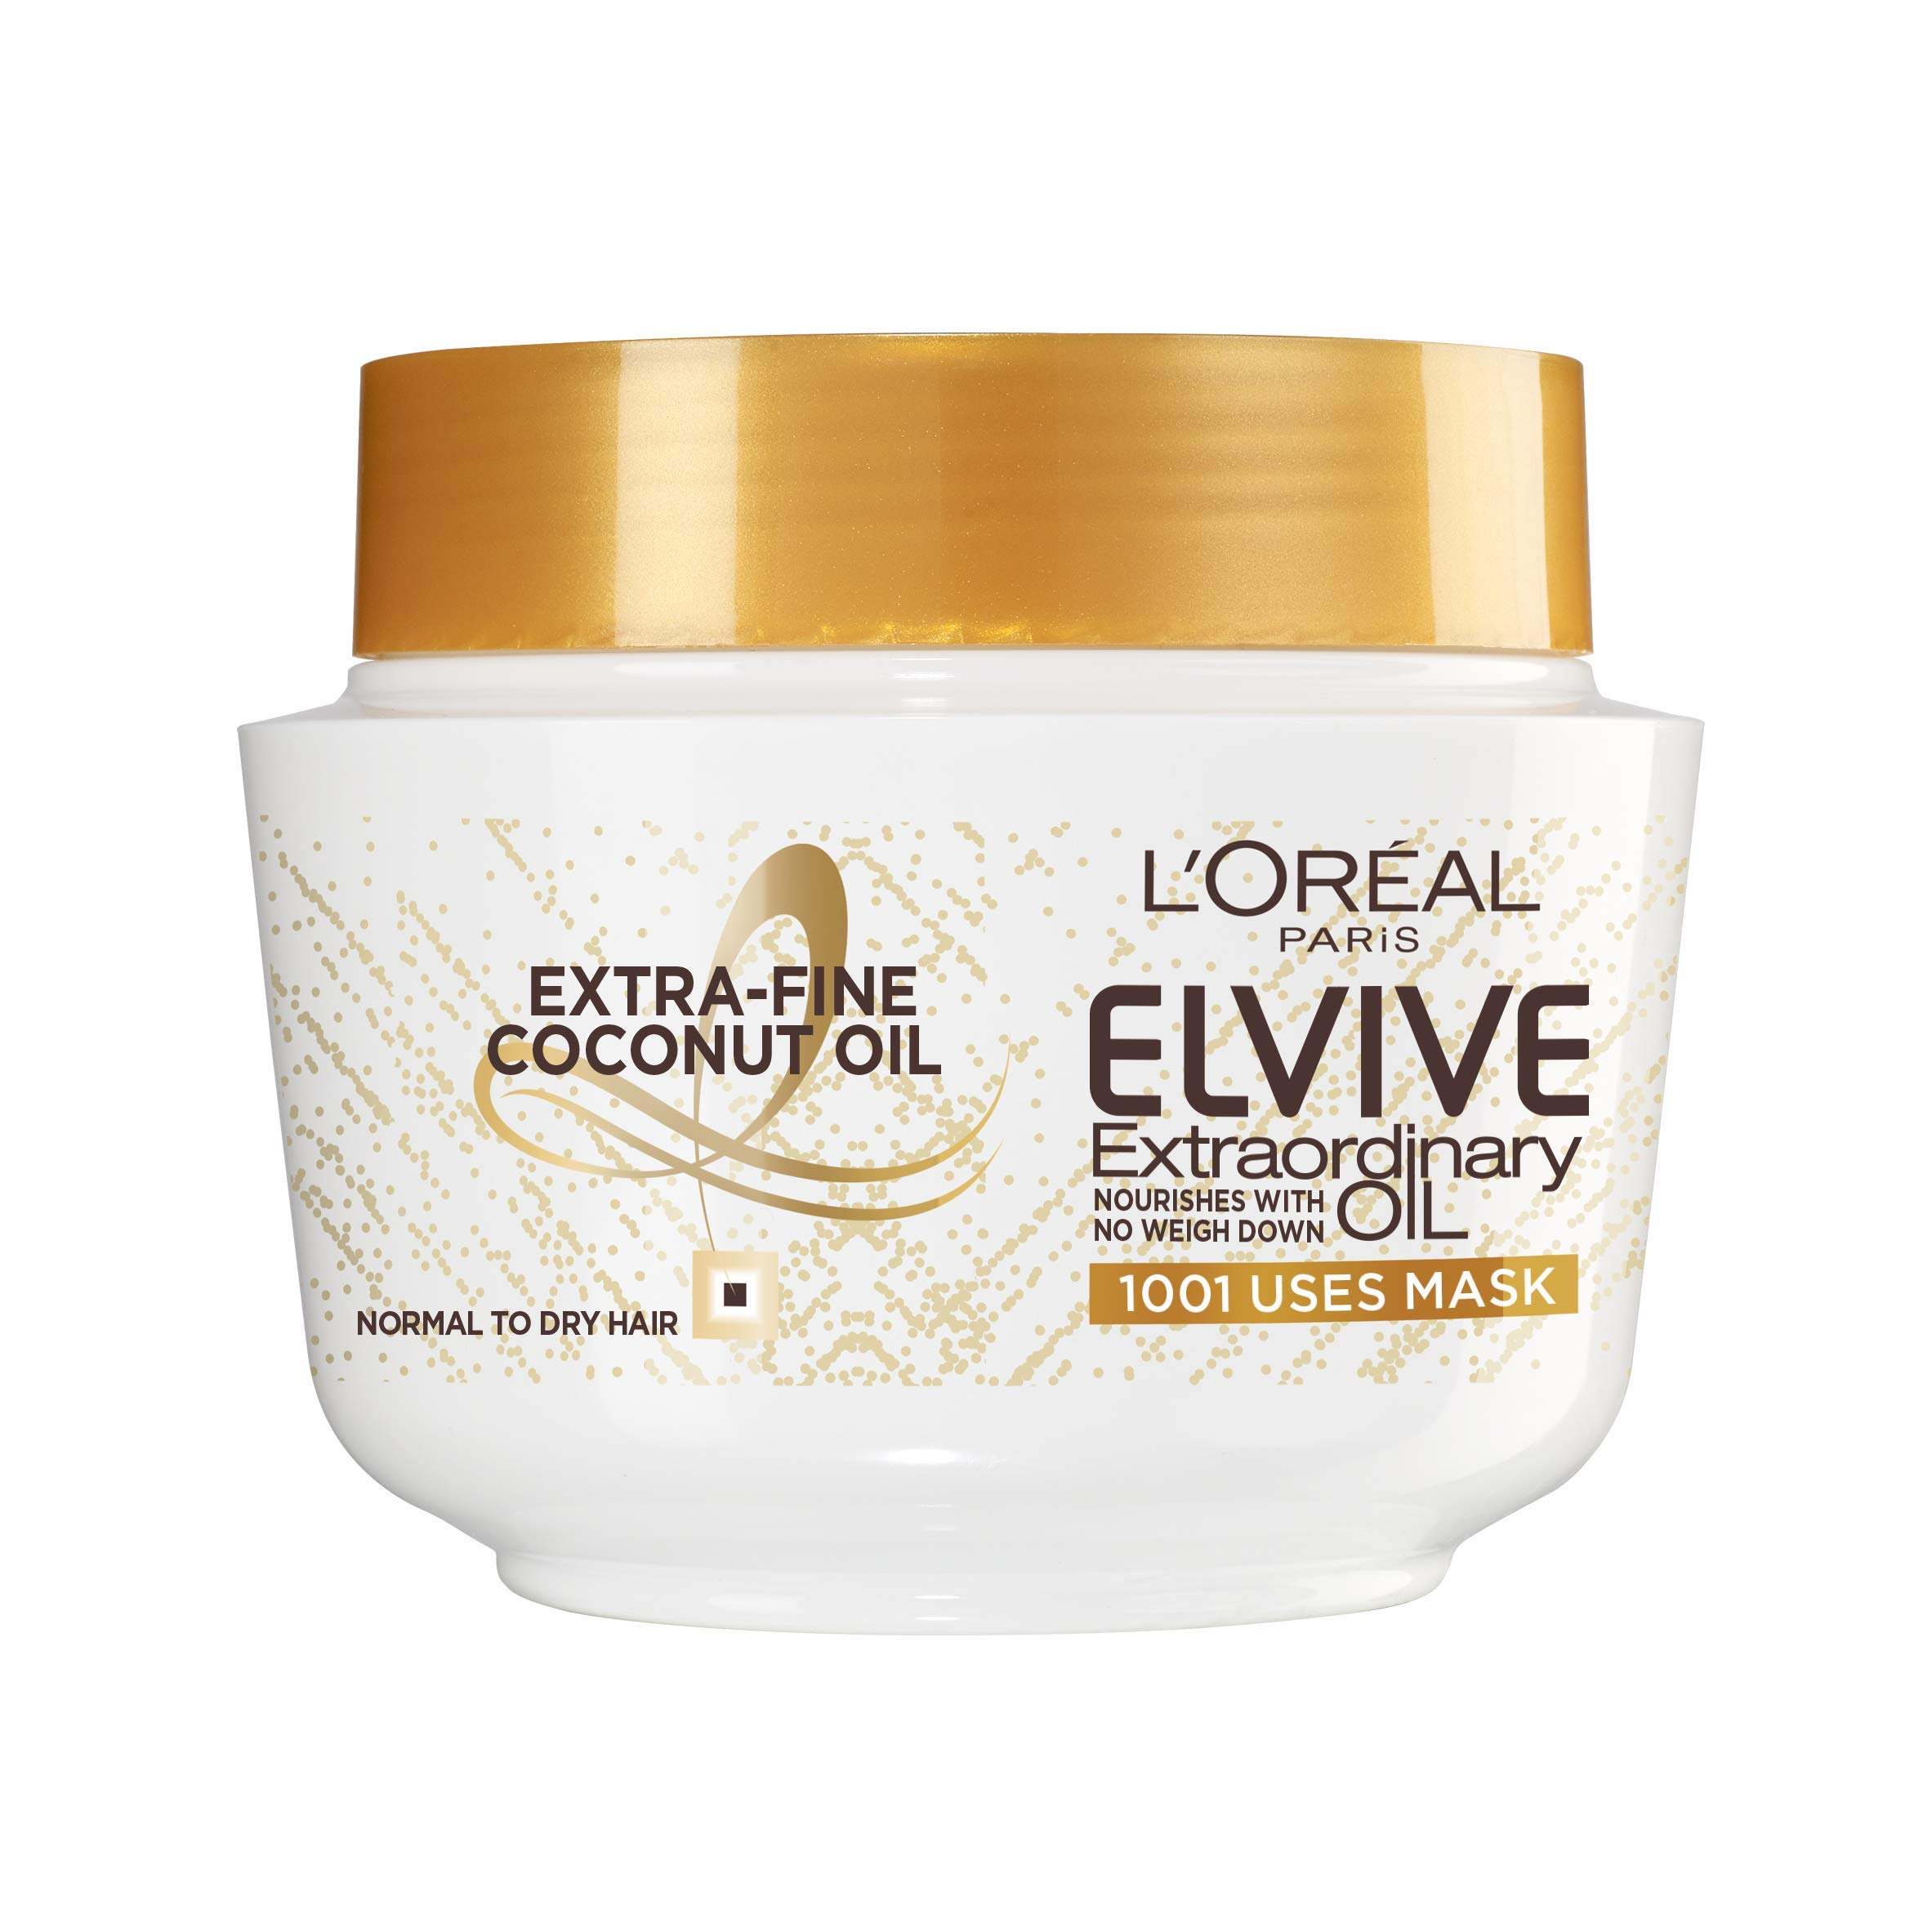 L'Oréal Elvive Extraordinary Oil Coconut Hair Mask Leave-in Conditioner for Normal to Dry Hair 300ml